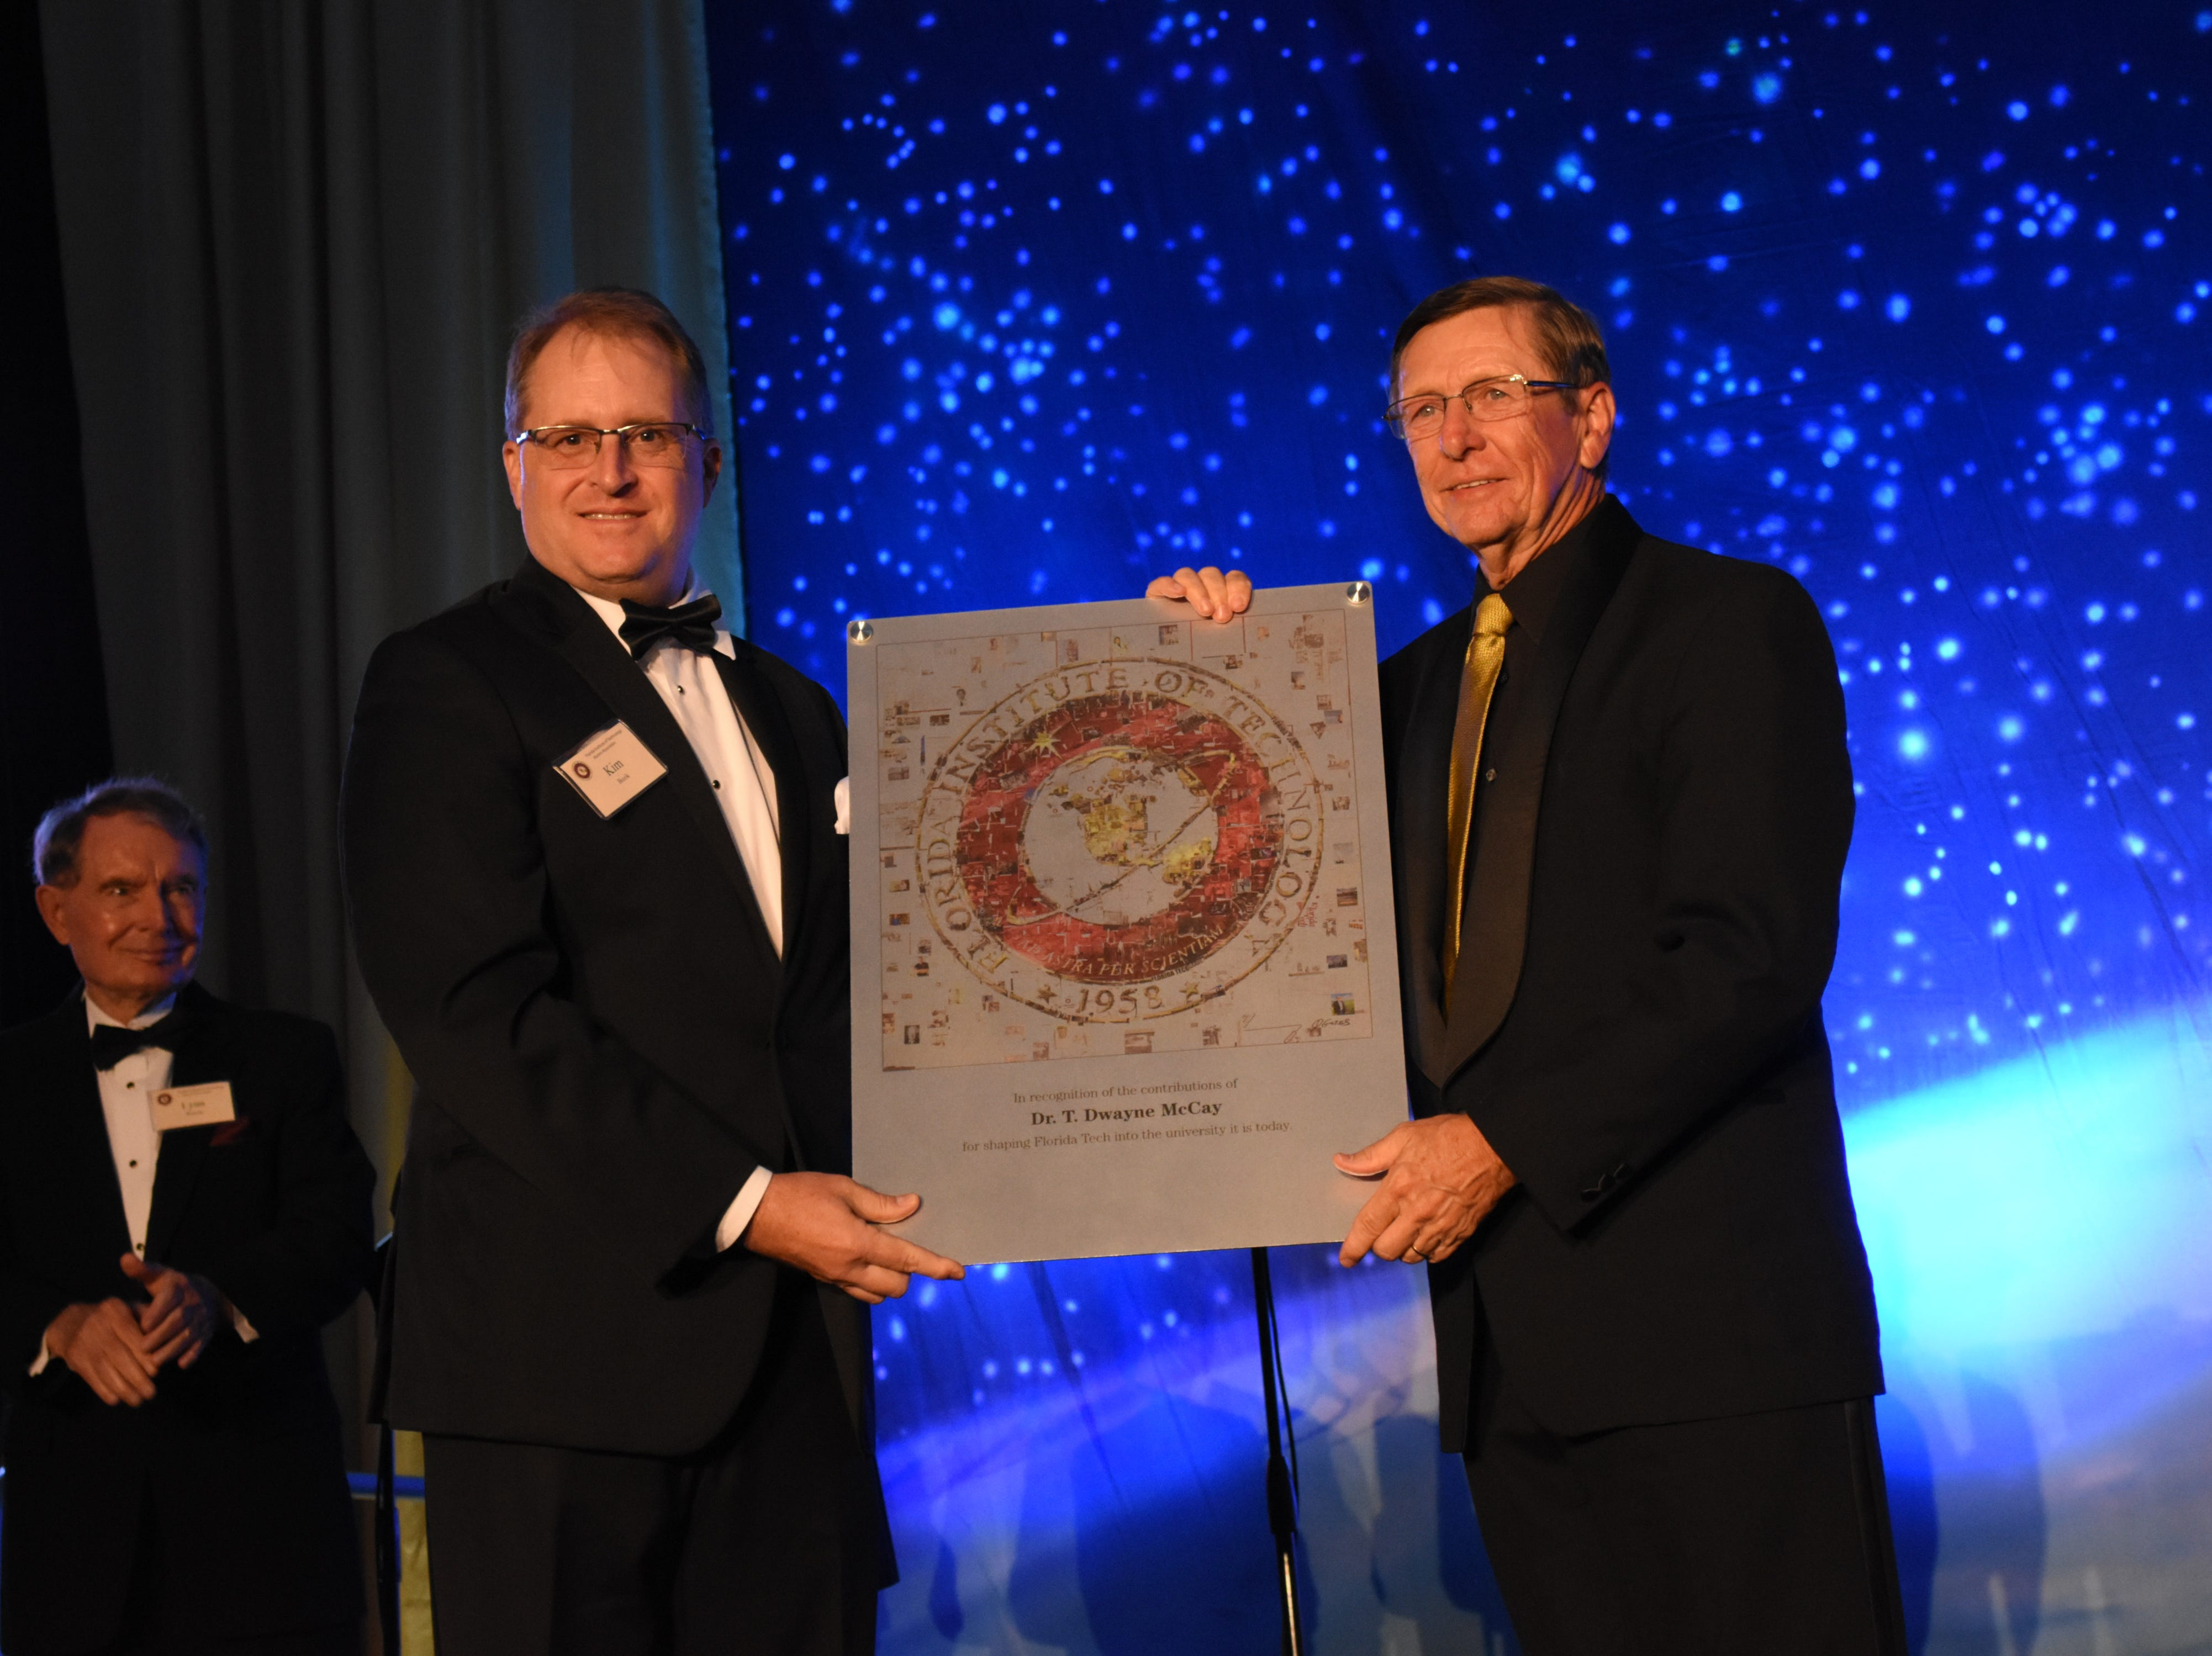 Florida Tech's president, Dr. T. Dwayne McCay, is recognized for his accomplishments that helped shape the school to what is is today at Florida Tech's 60th Anniversary Homecoming Gala Oct. 13, 2018, at the Clemente Center.